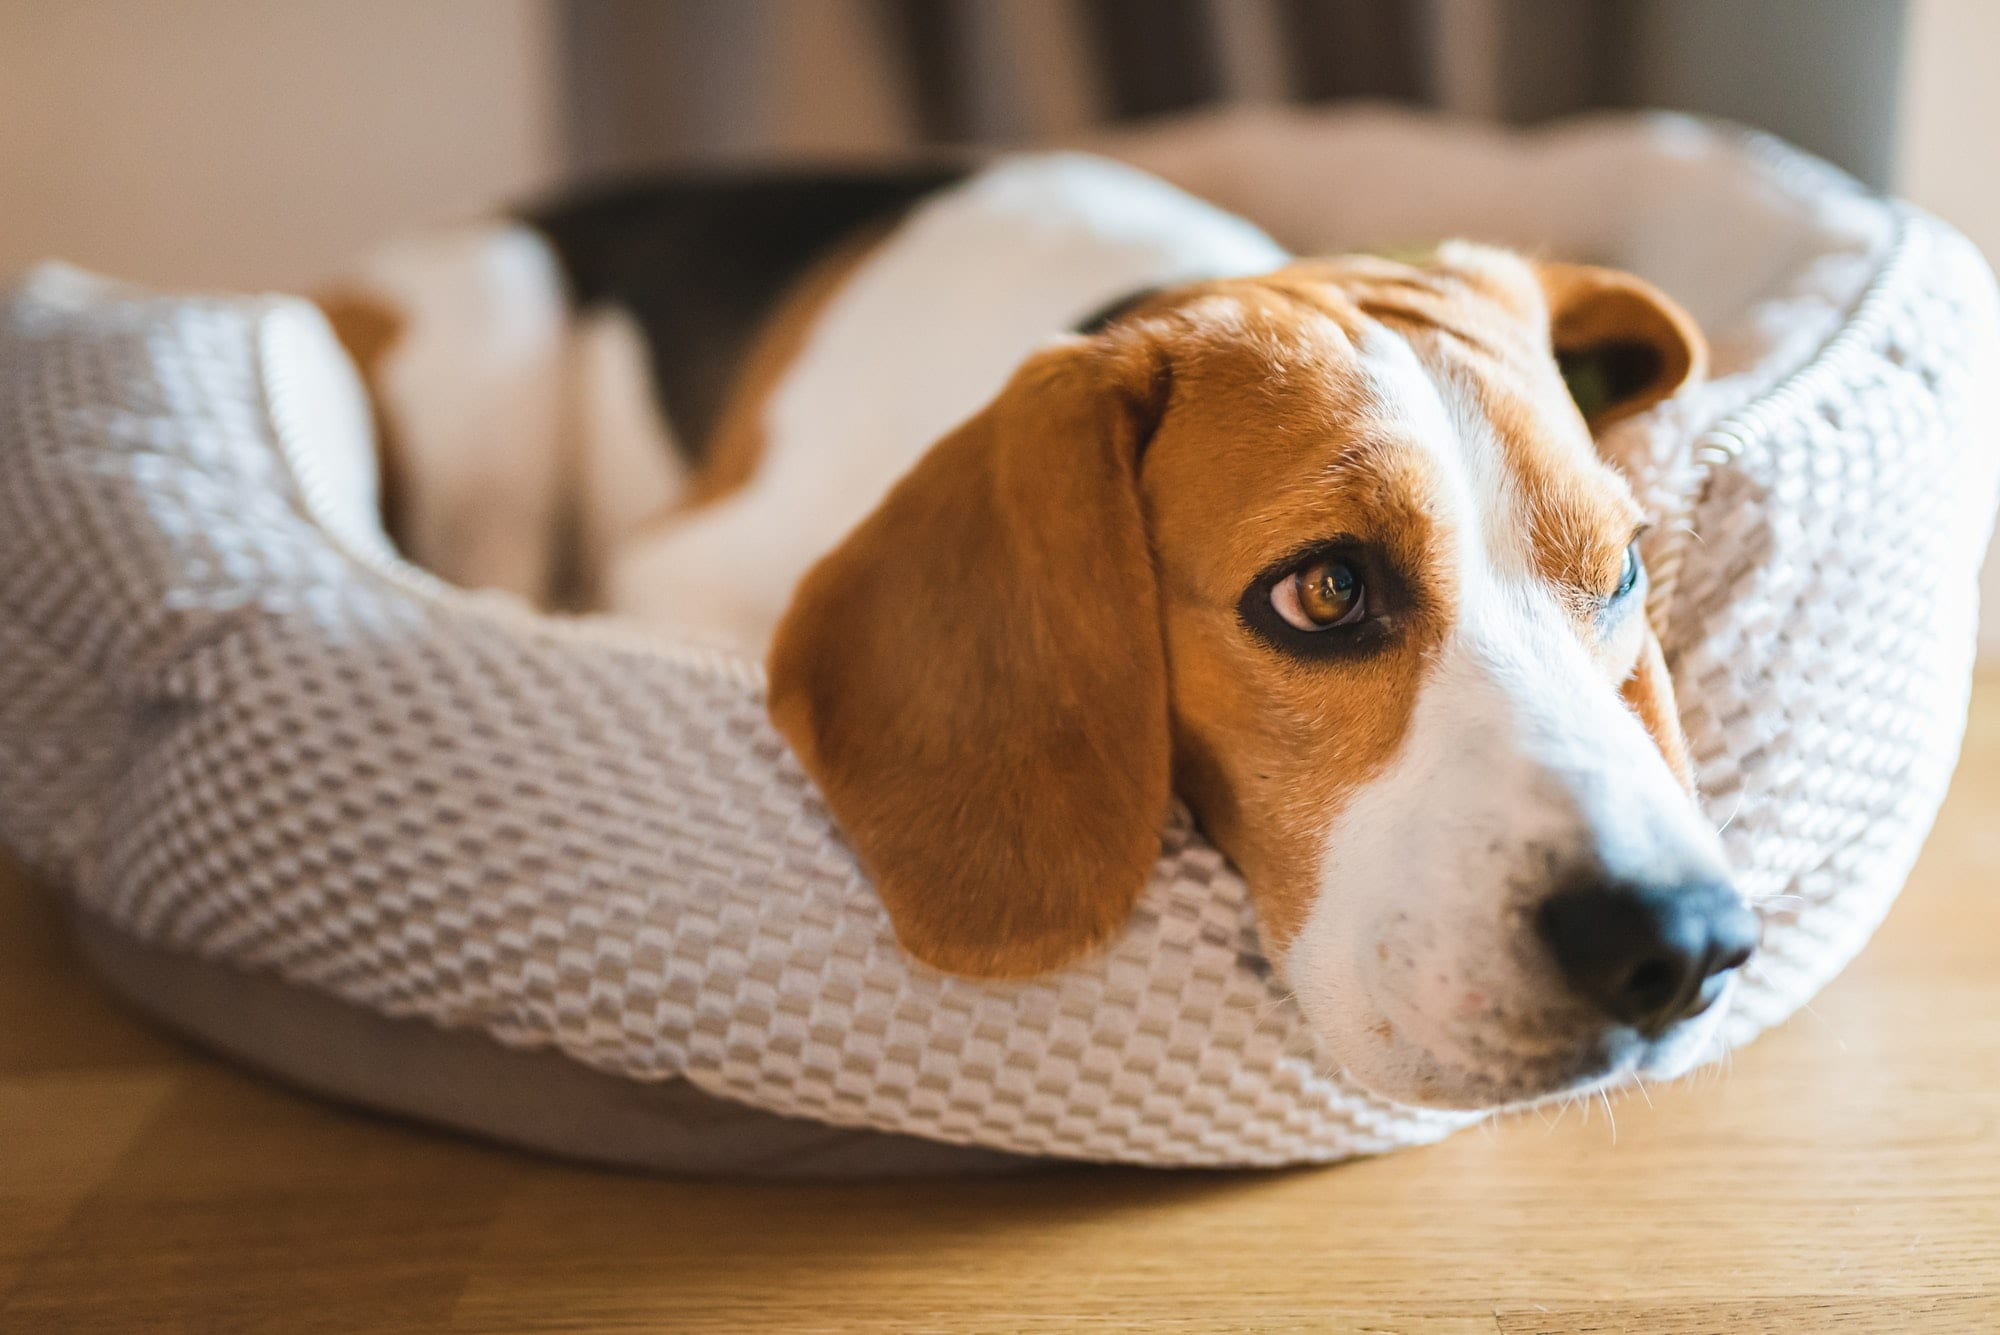 prevent hookworms in dogs with a simple trick